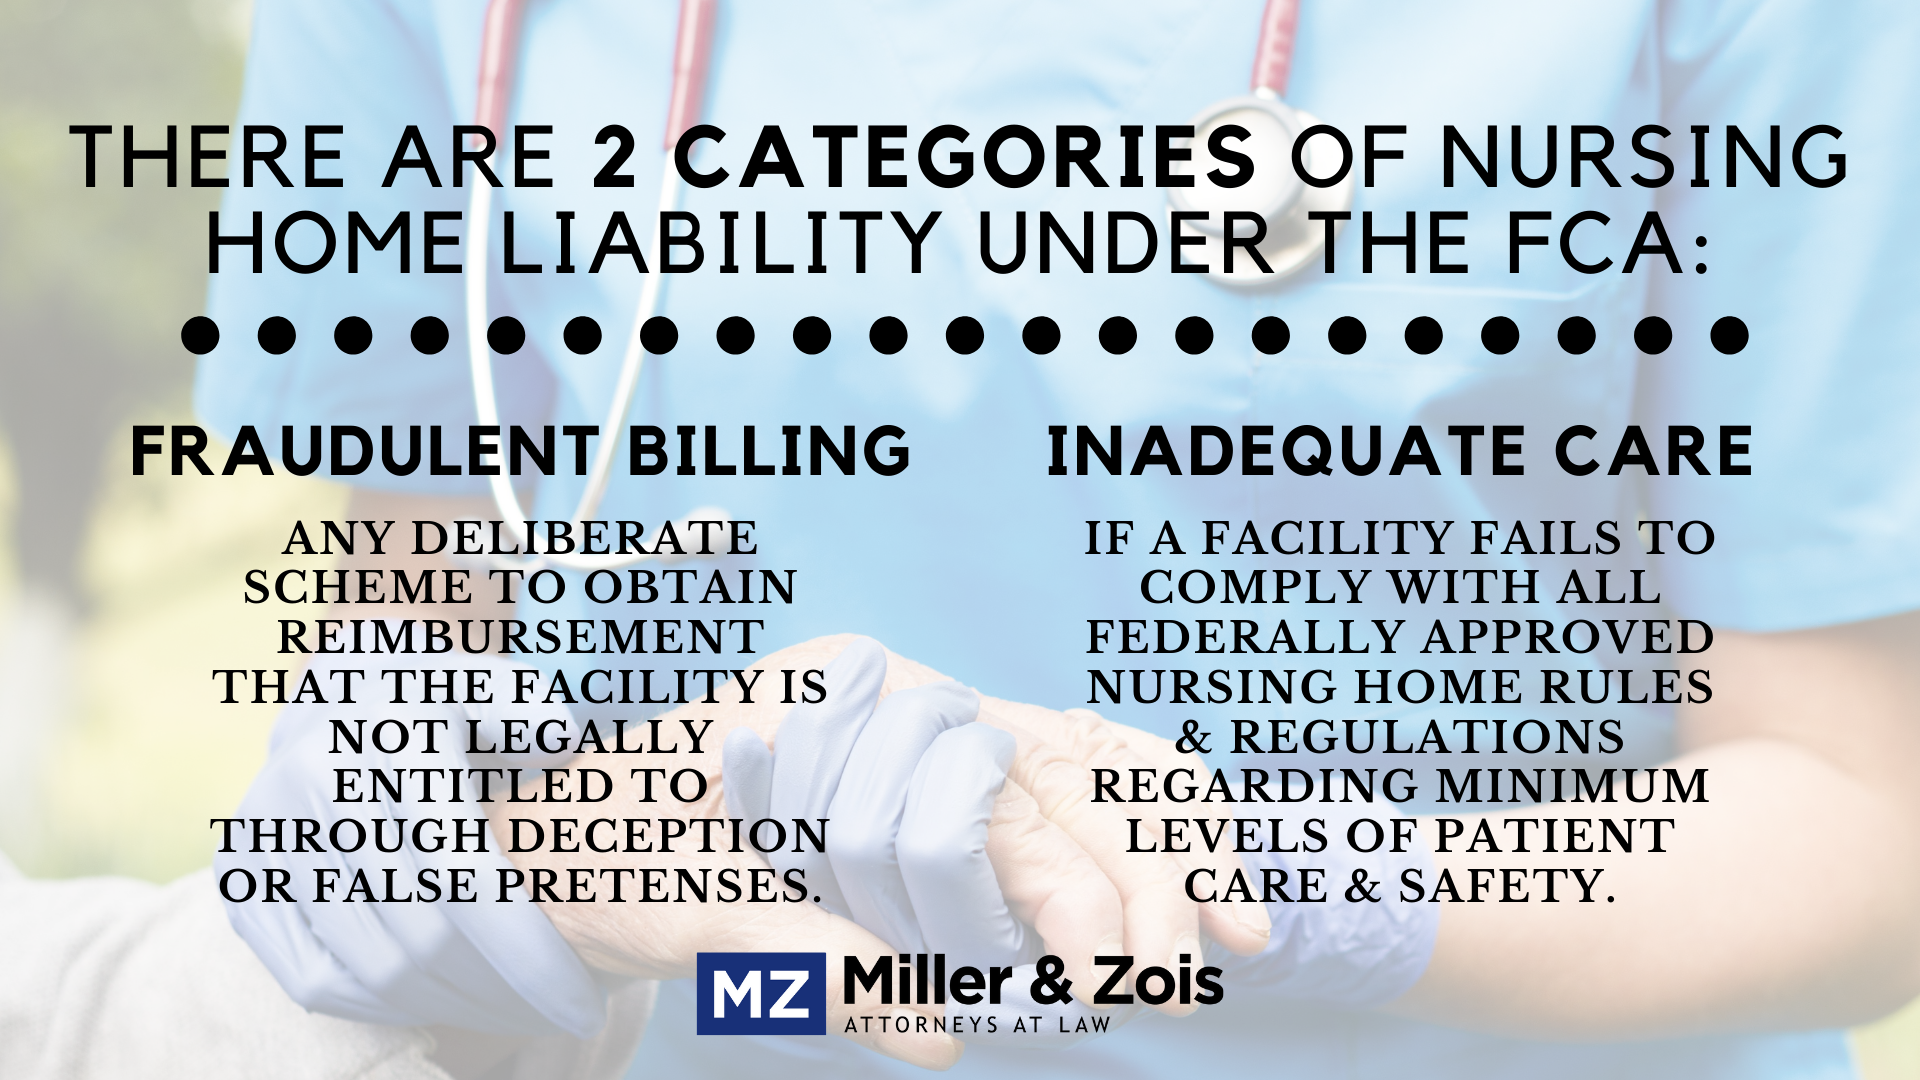 Nursing home liability